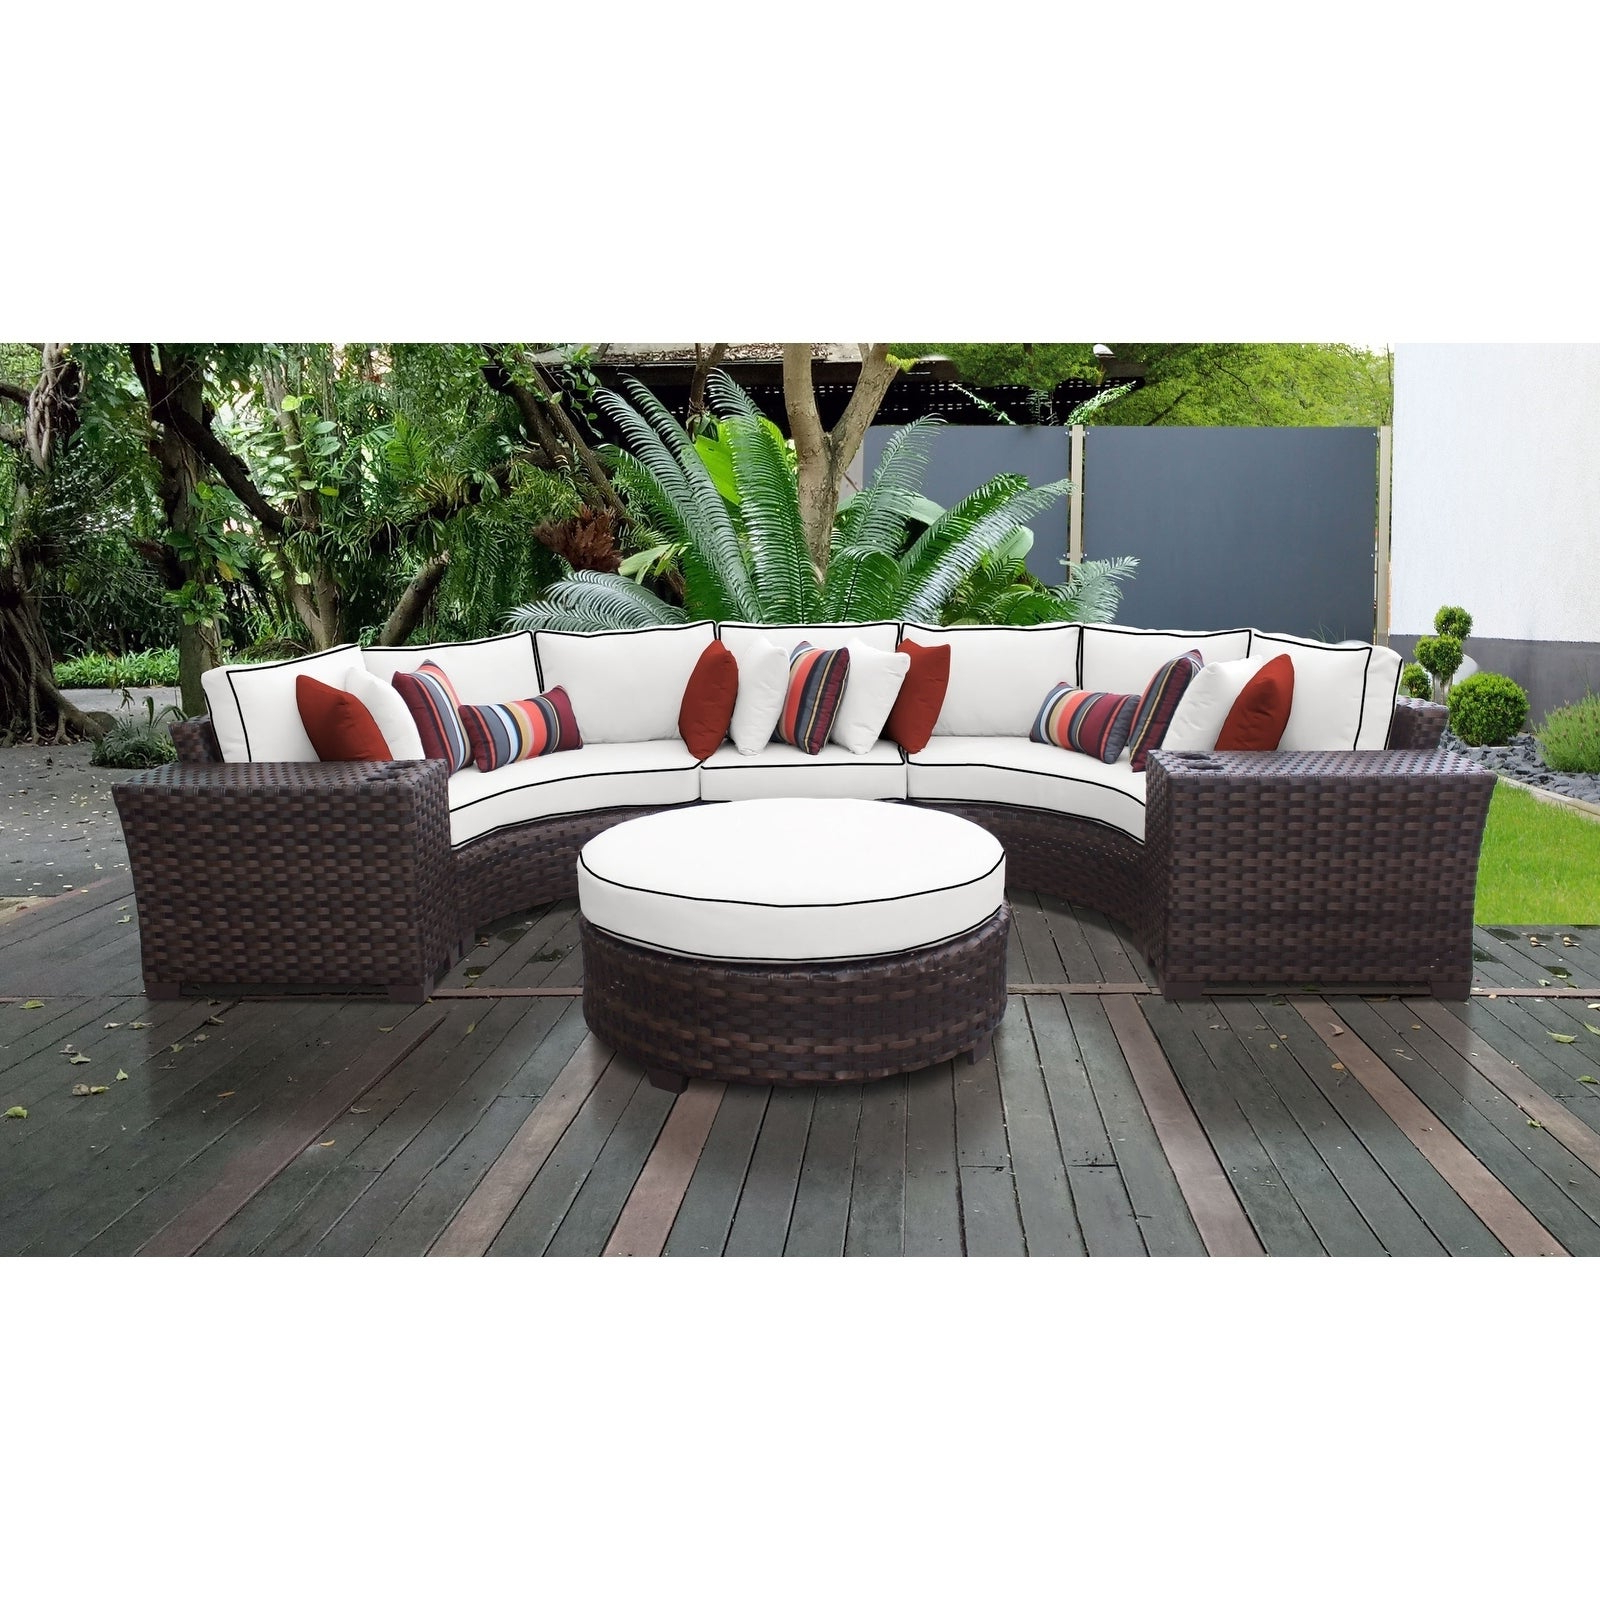 Most Up To Date Camak Patio Sofas With Cushions With Regard To Kathy Ireland River Brook 6 Piece Outdoor Wicker Patio Furniture Set 06c (View 17 of 20)